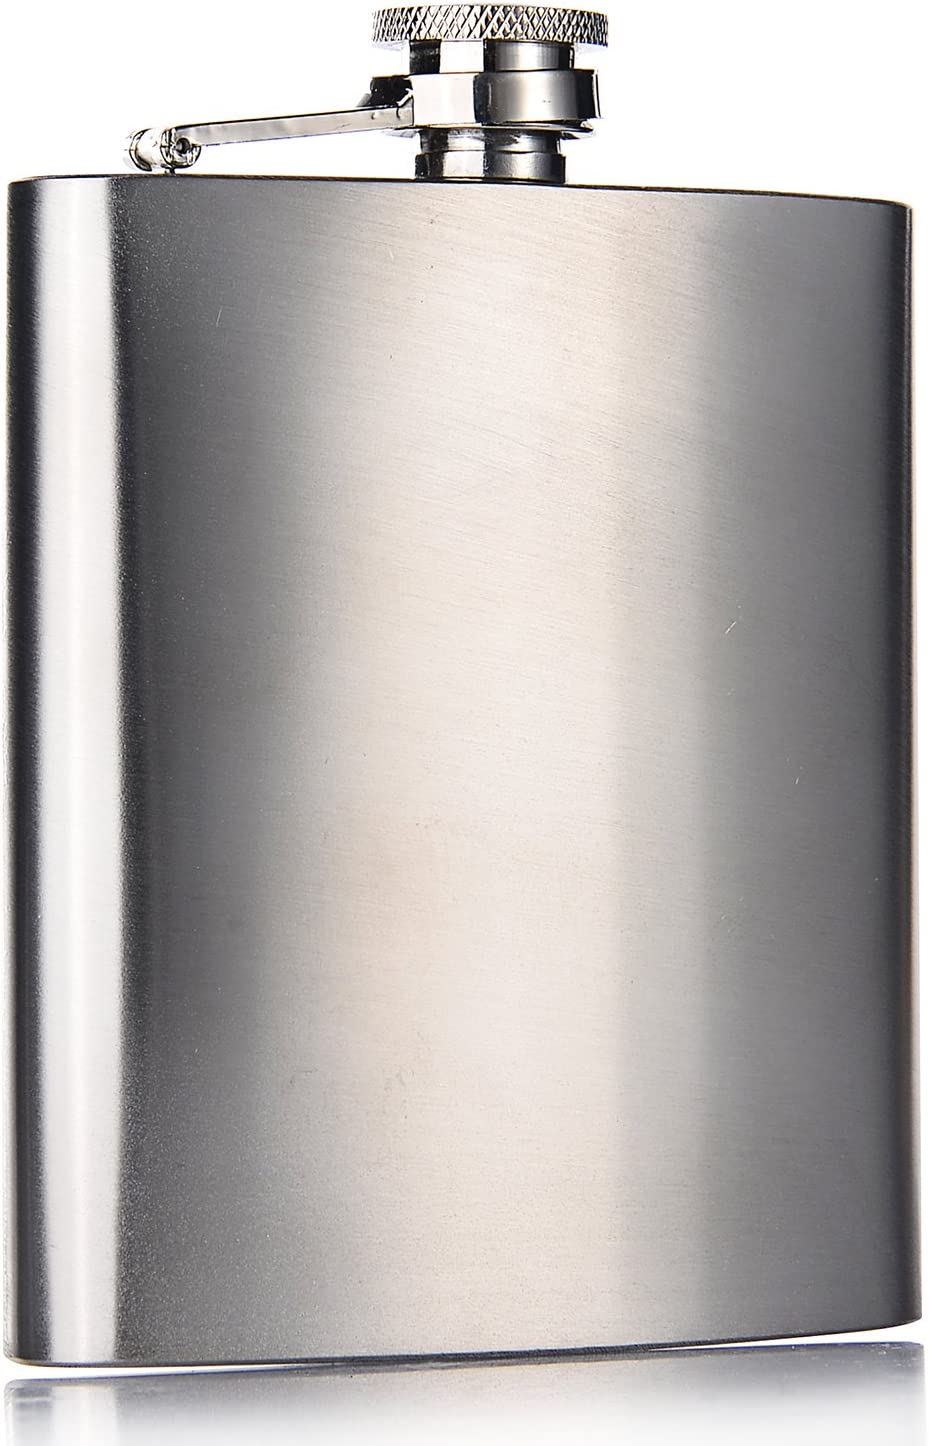 LIHAO Petaca Hip Flask de Acero Inoxidable para Whisky Licor Alcohol